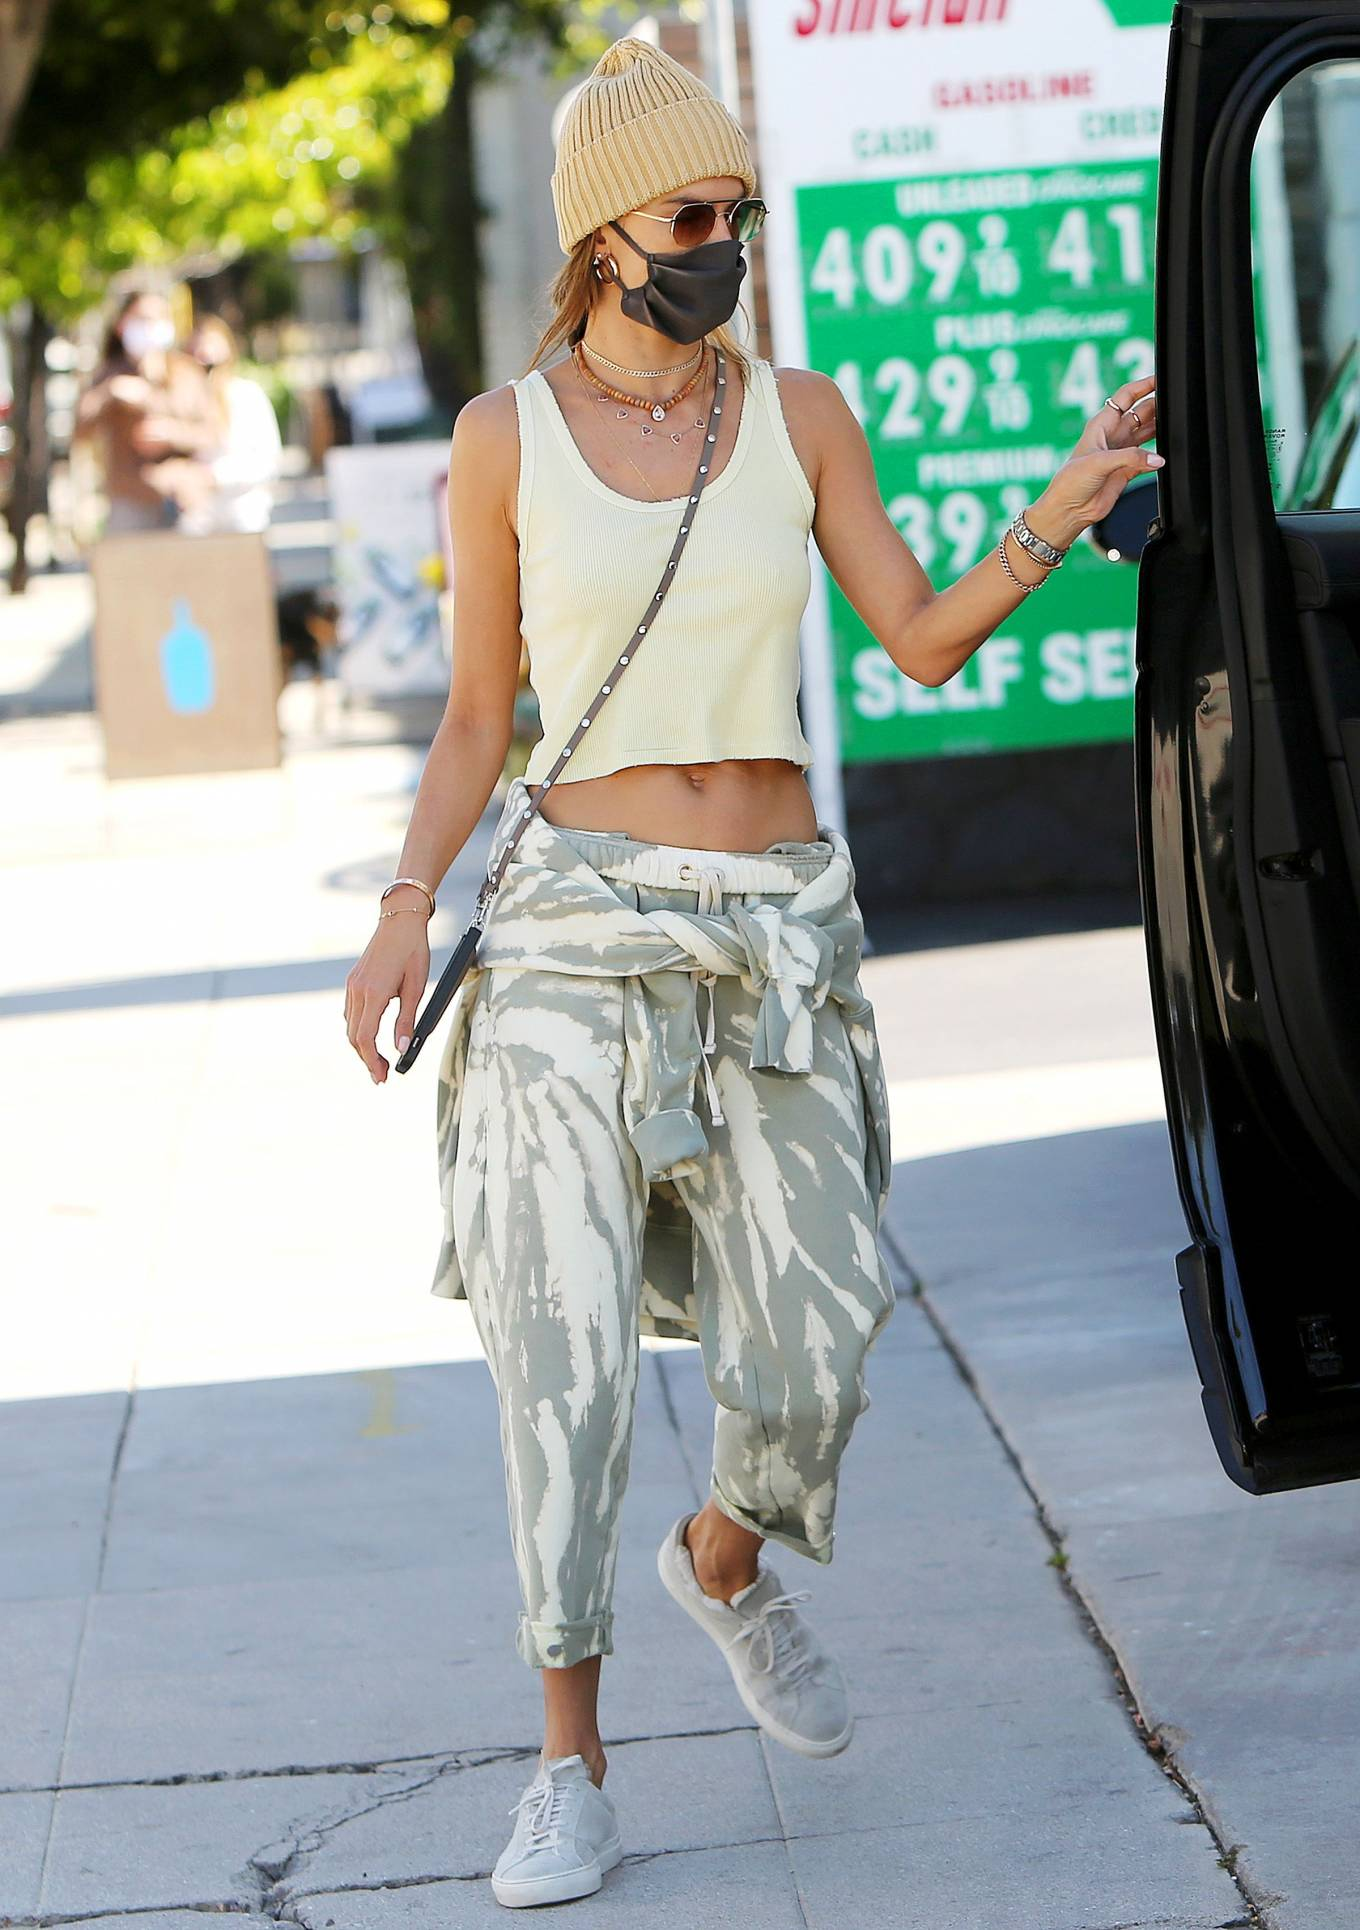 Alessandra Ambrosio rocking round grey suede lace-up sneakers by Common Projects with flat heel